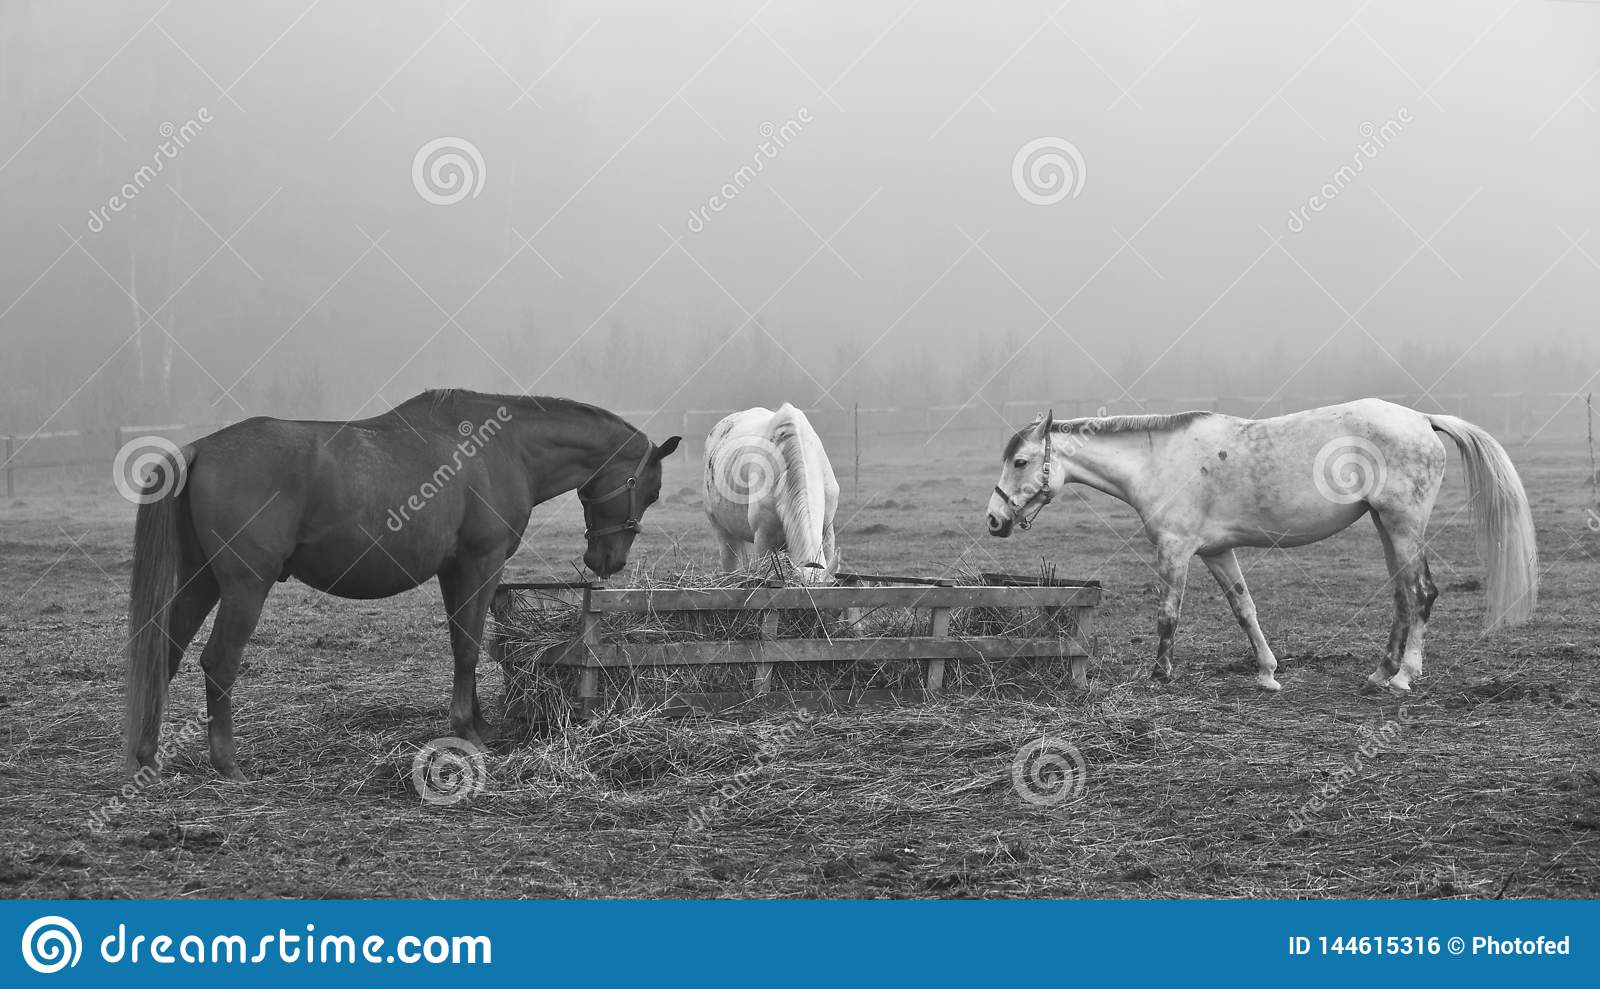 Horses in the field, in the pasture eating hay.